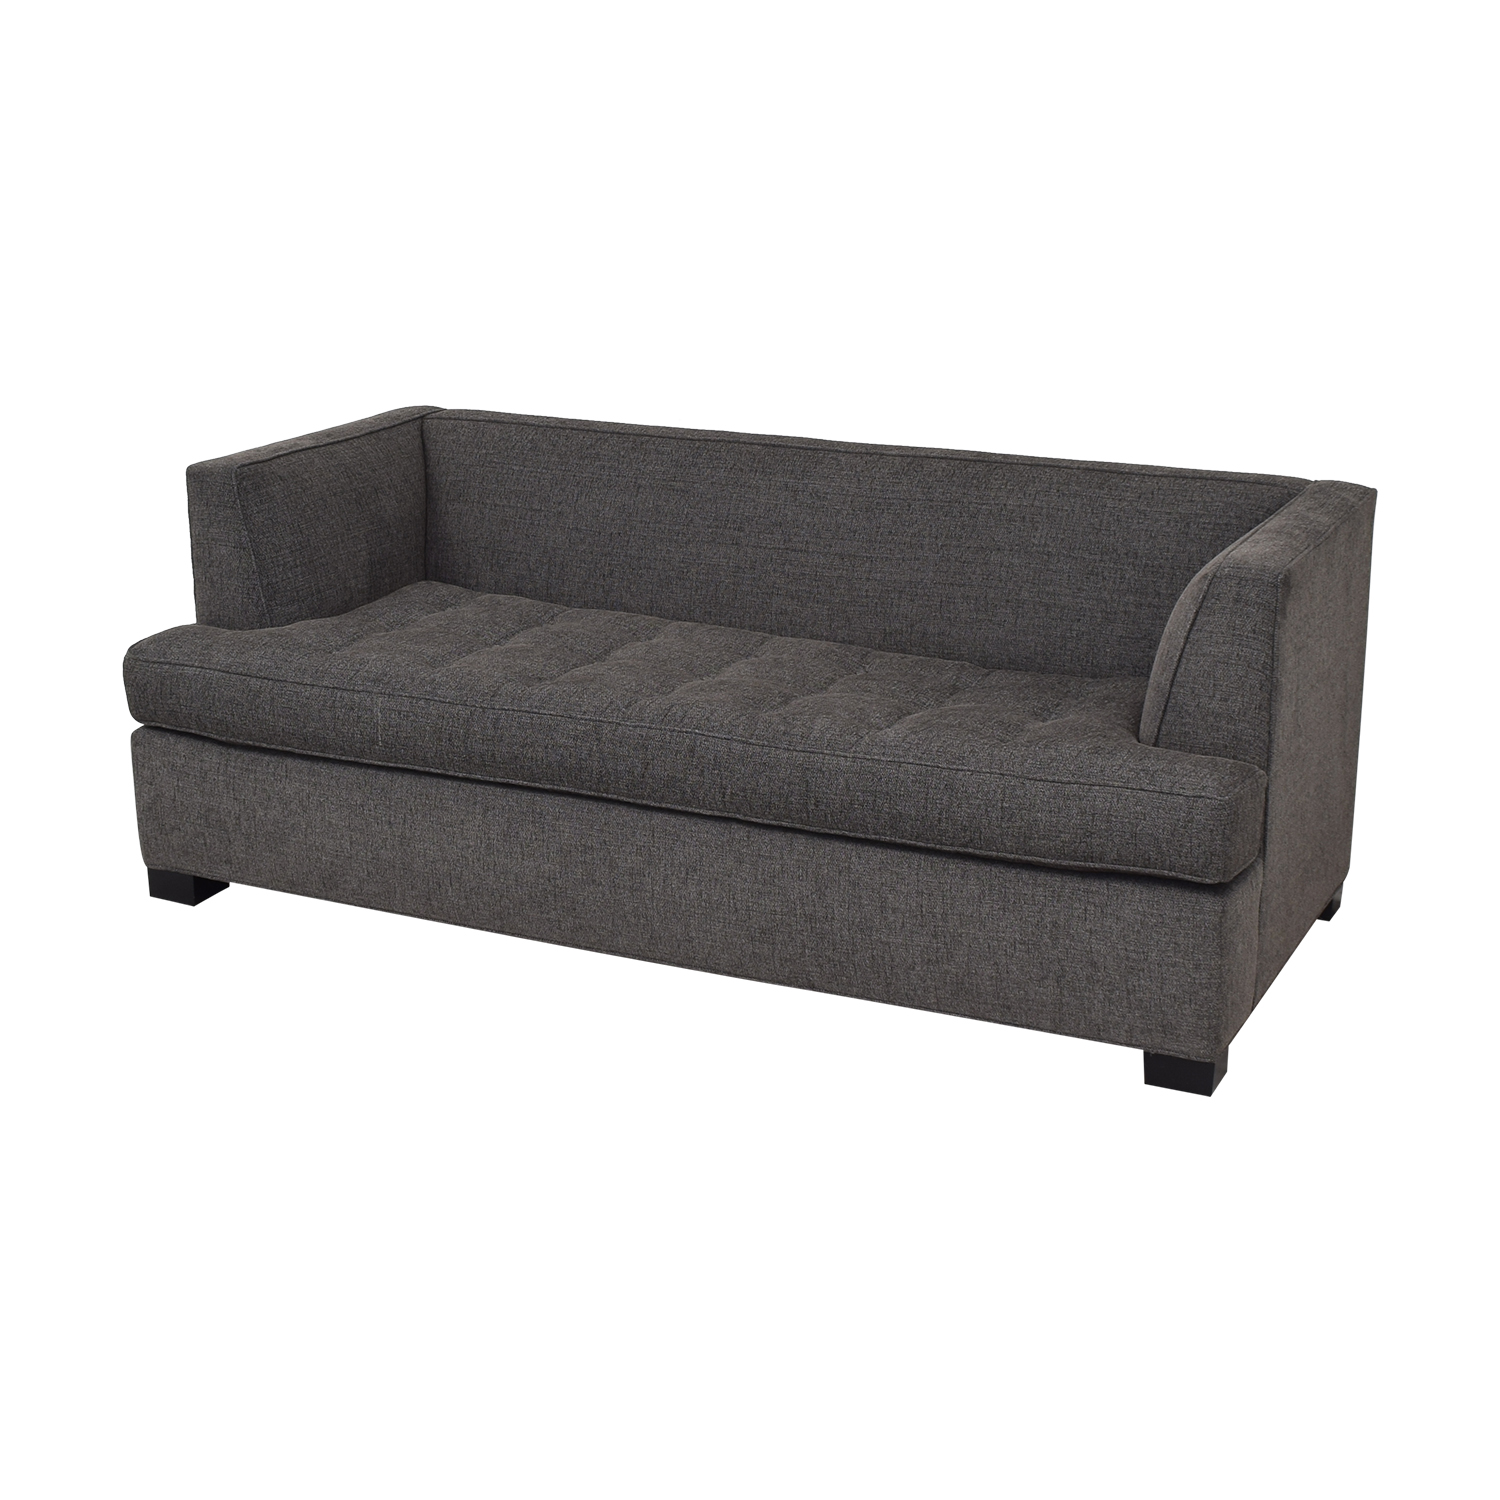 Mitchell Gold + Bob Williams Mitchell Gold + Bob Williams Full Sleeper Sofa ct